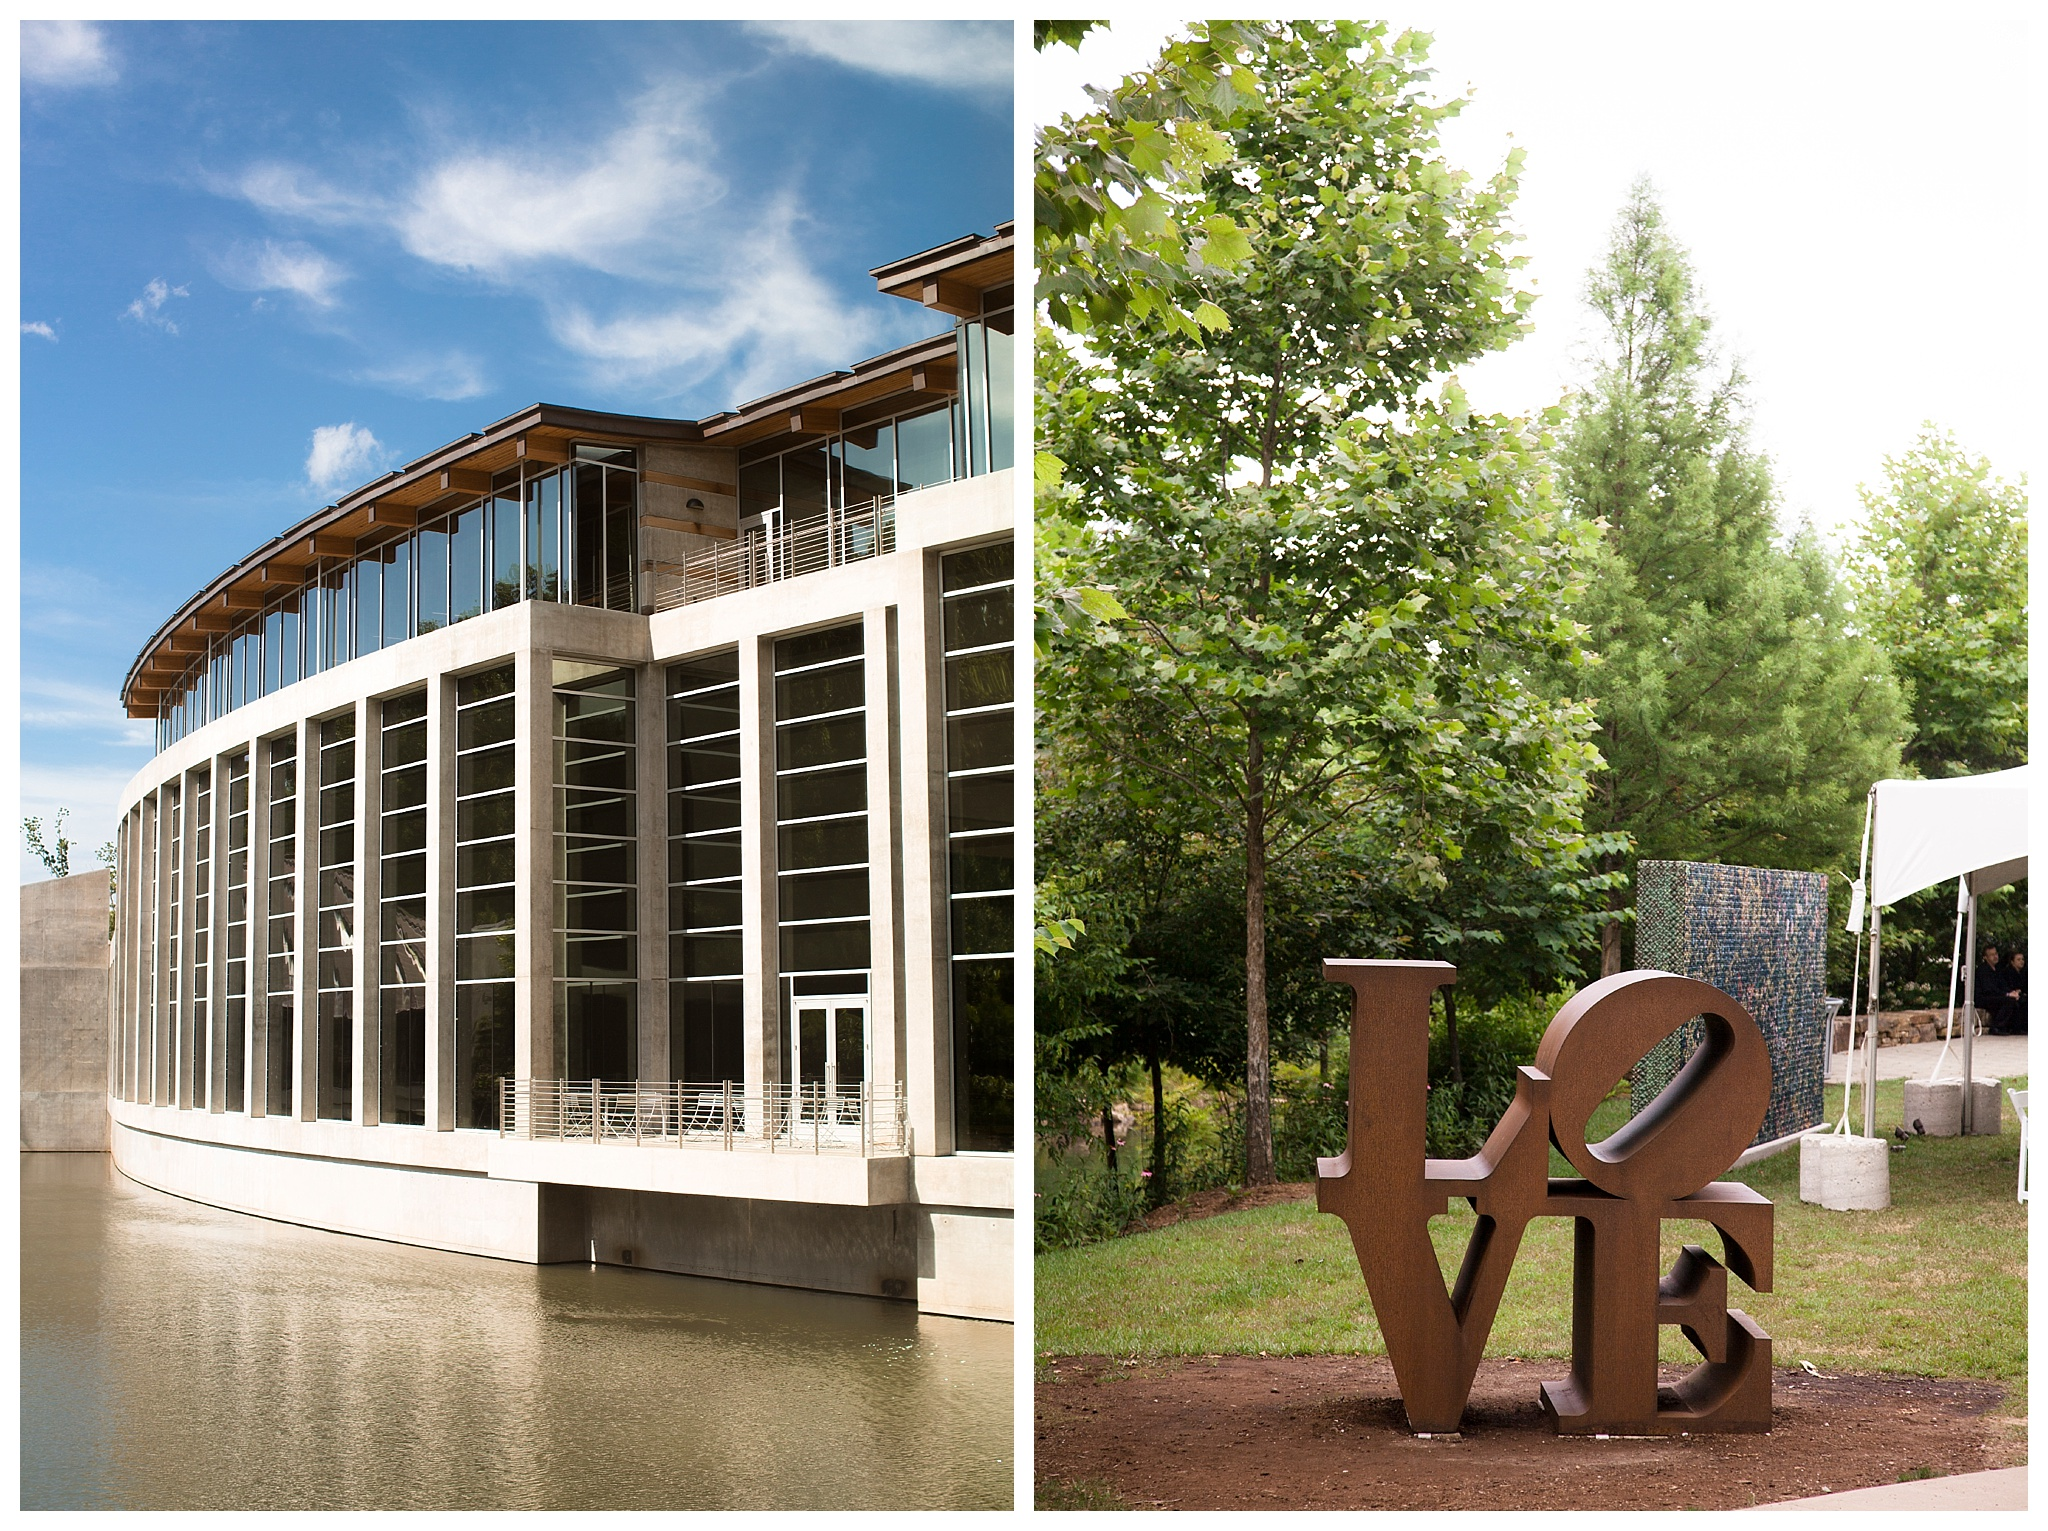 EB_CrystalBridges15.jpg